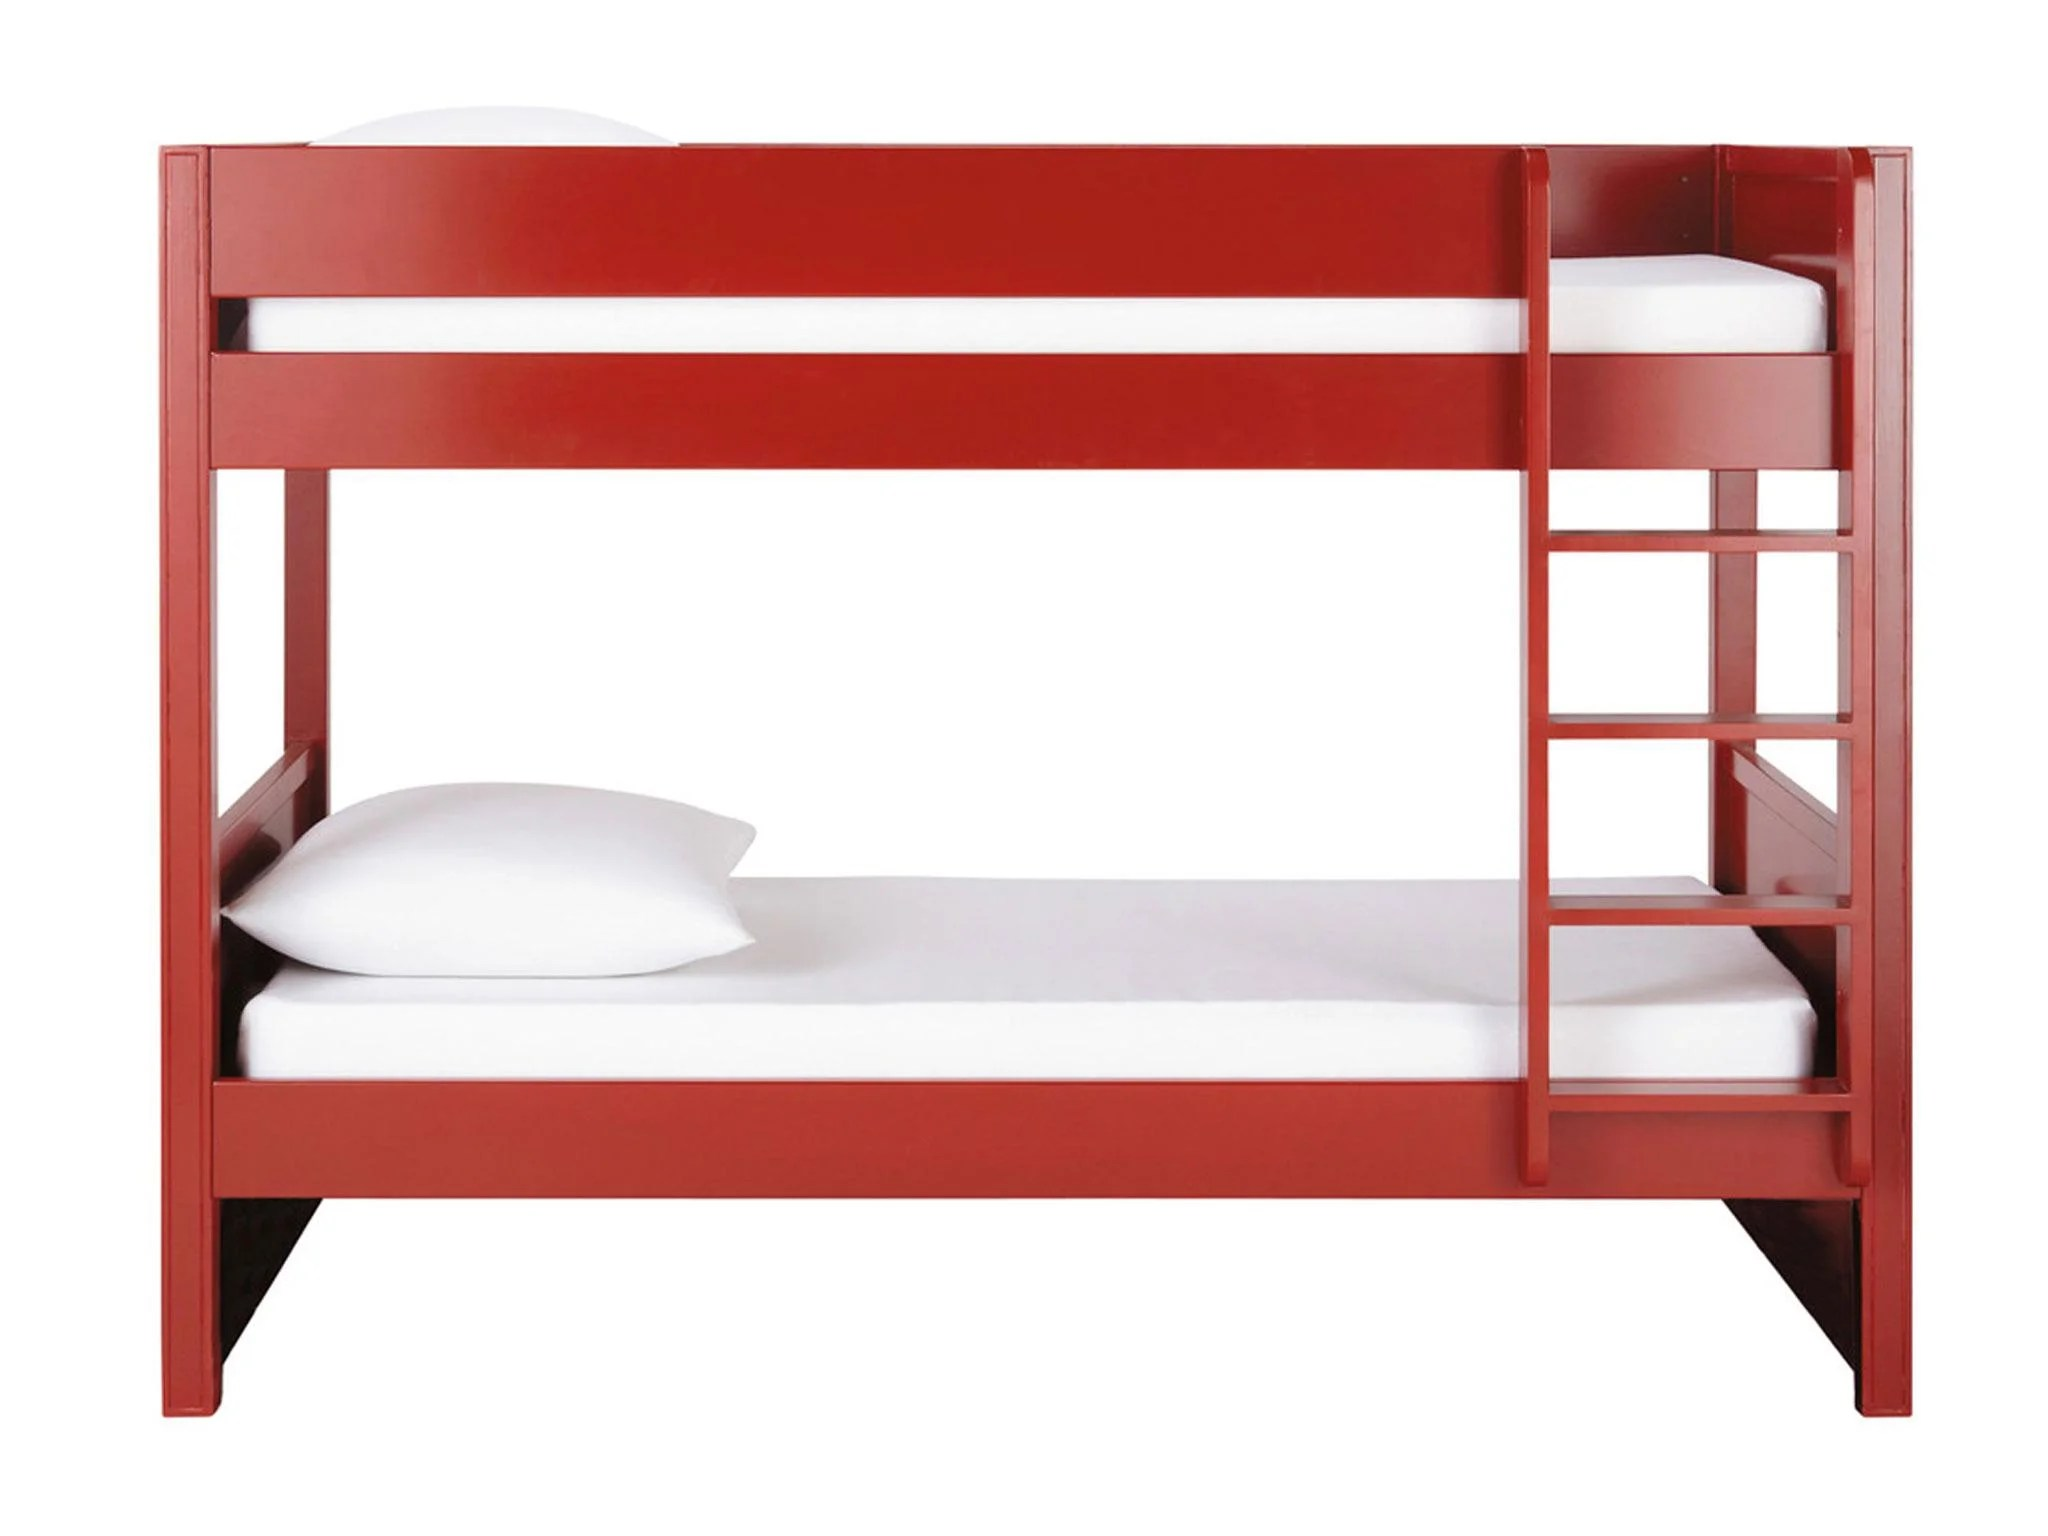 Ikea Bunk Bed Australia 10 Best Bunk Beds The Independent